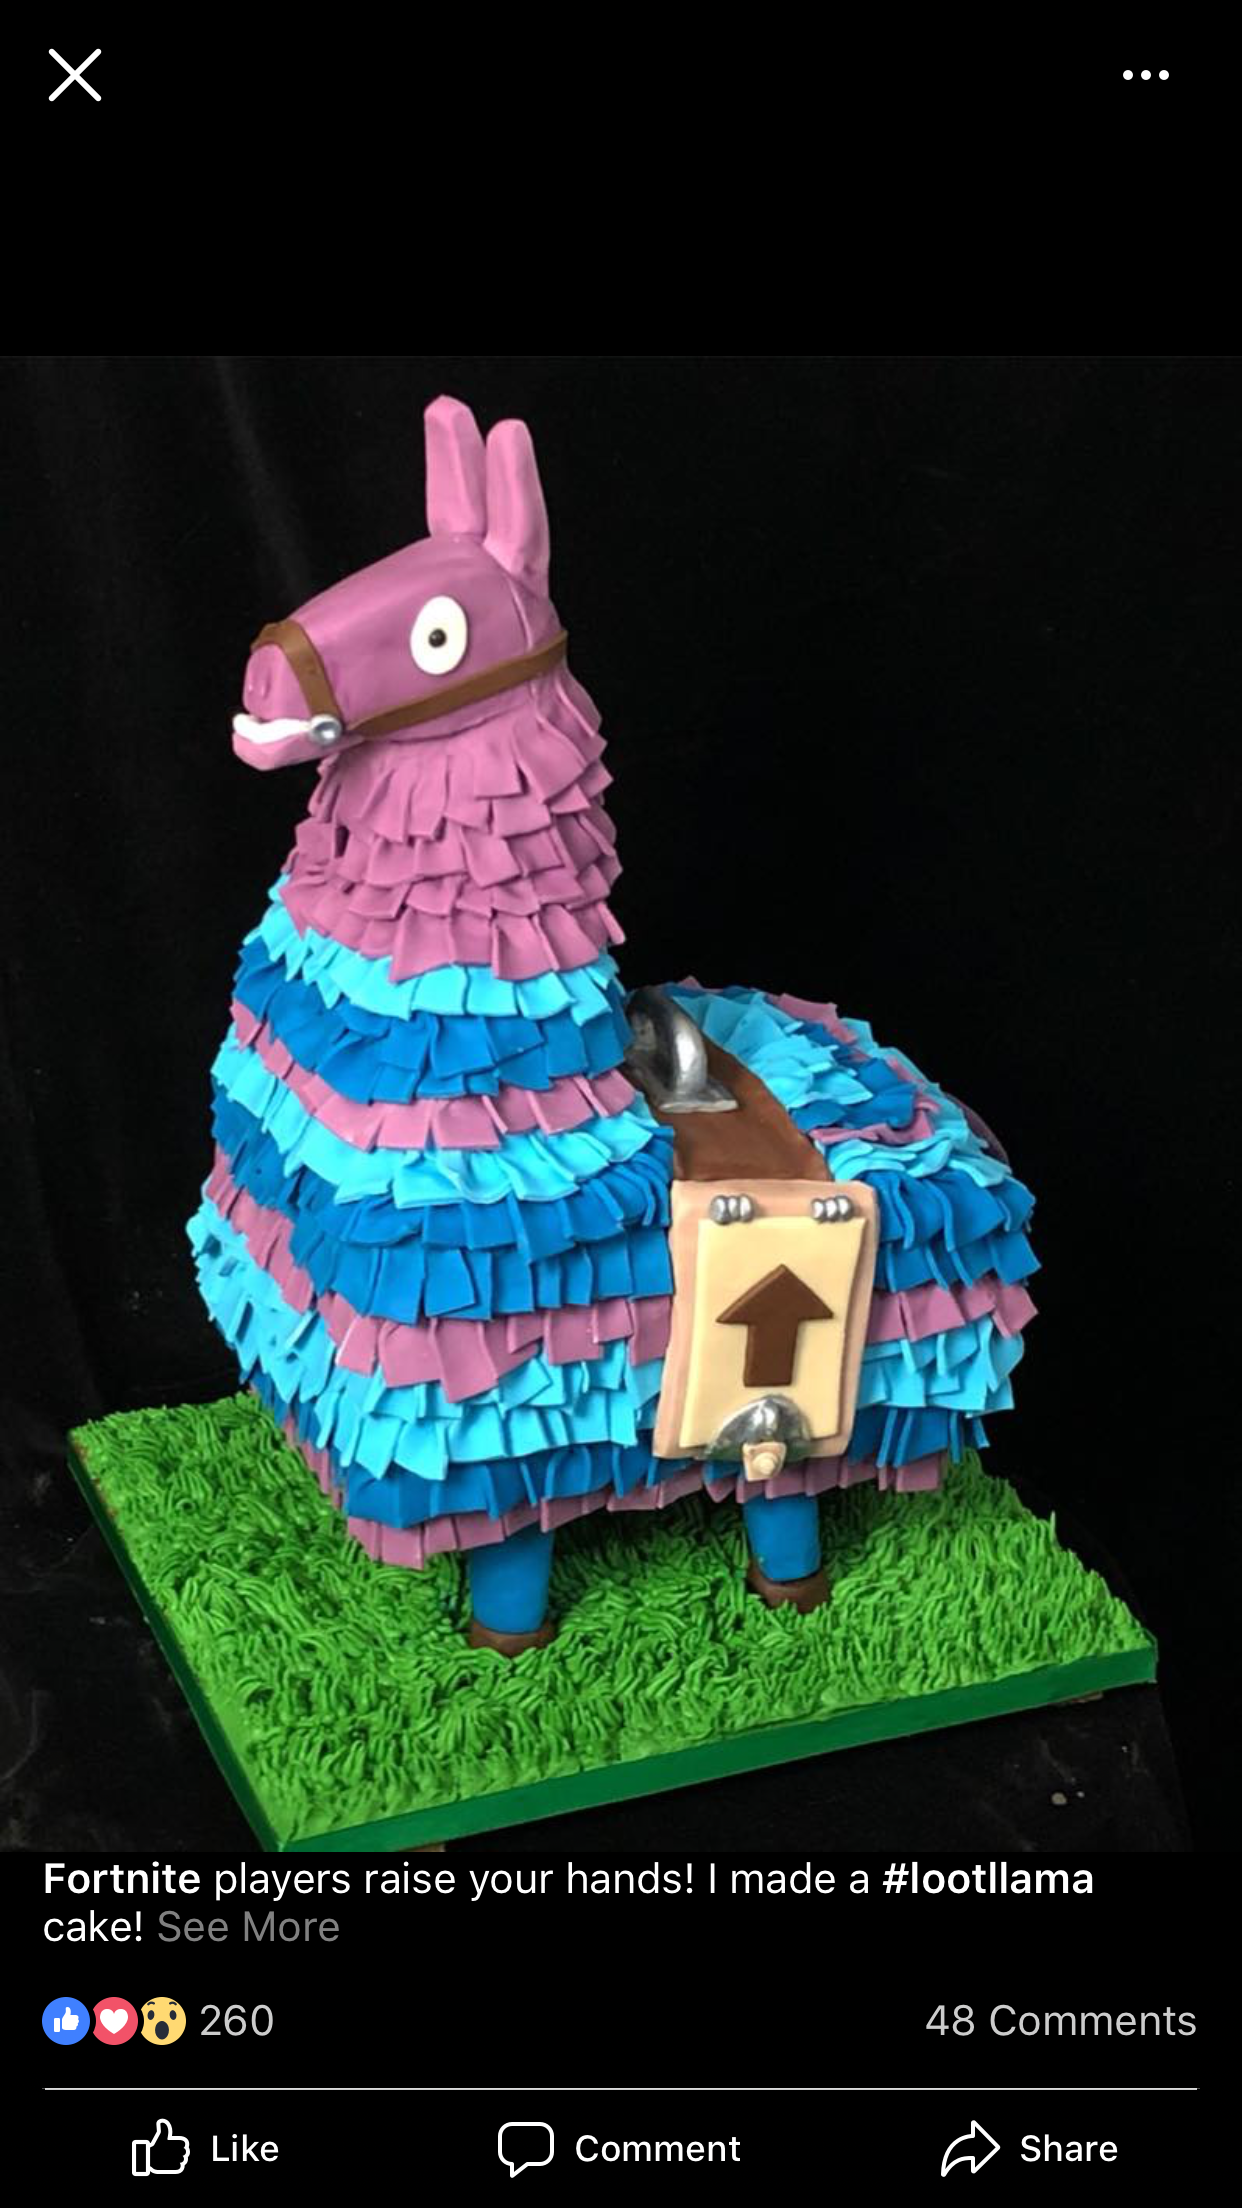 Gateaux Lama Fortnite